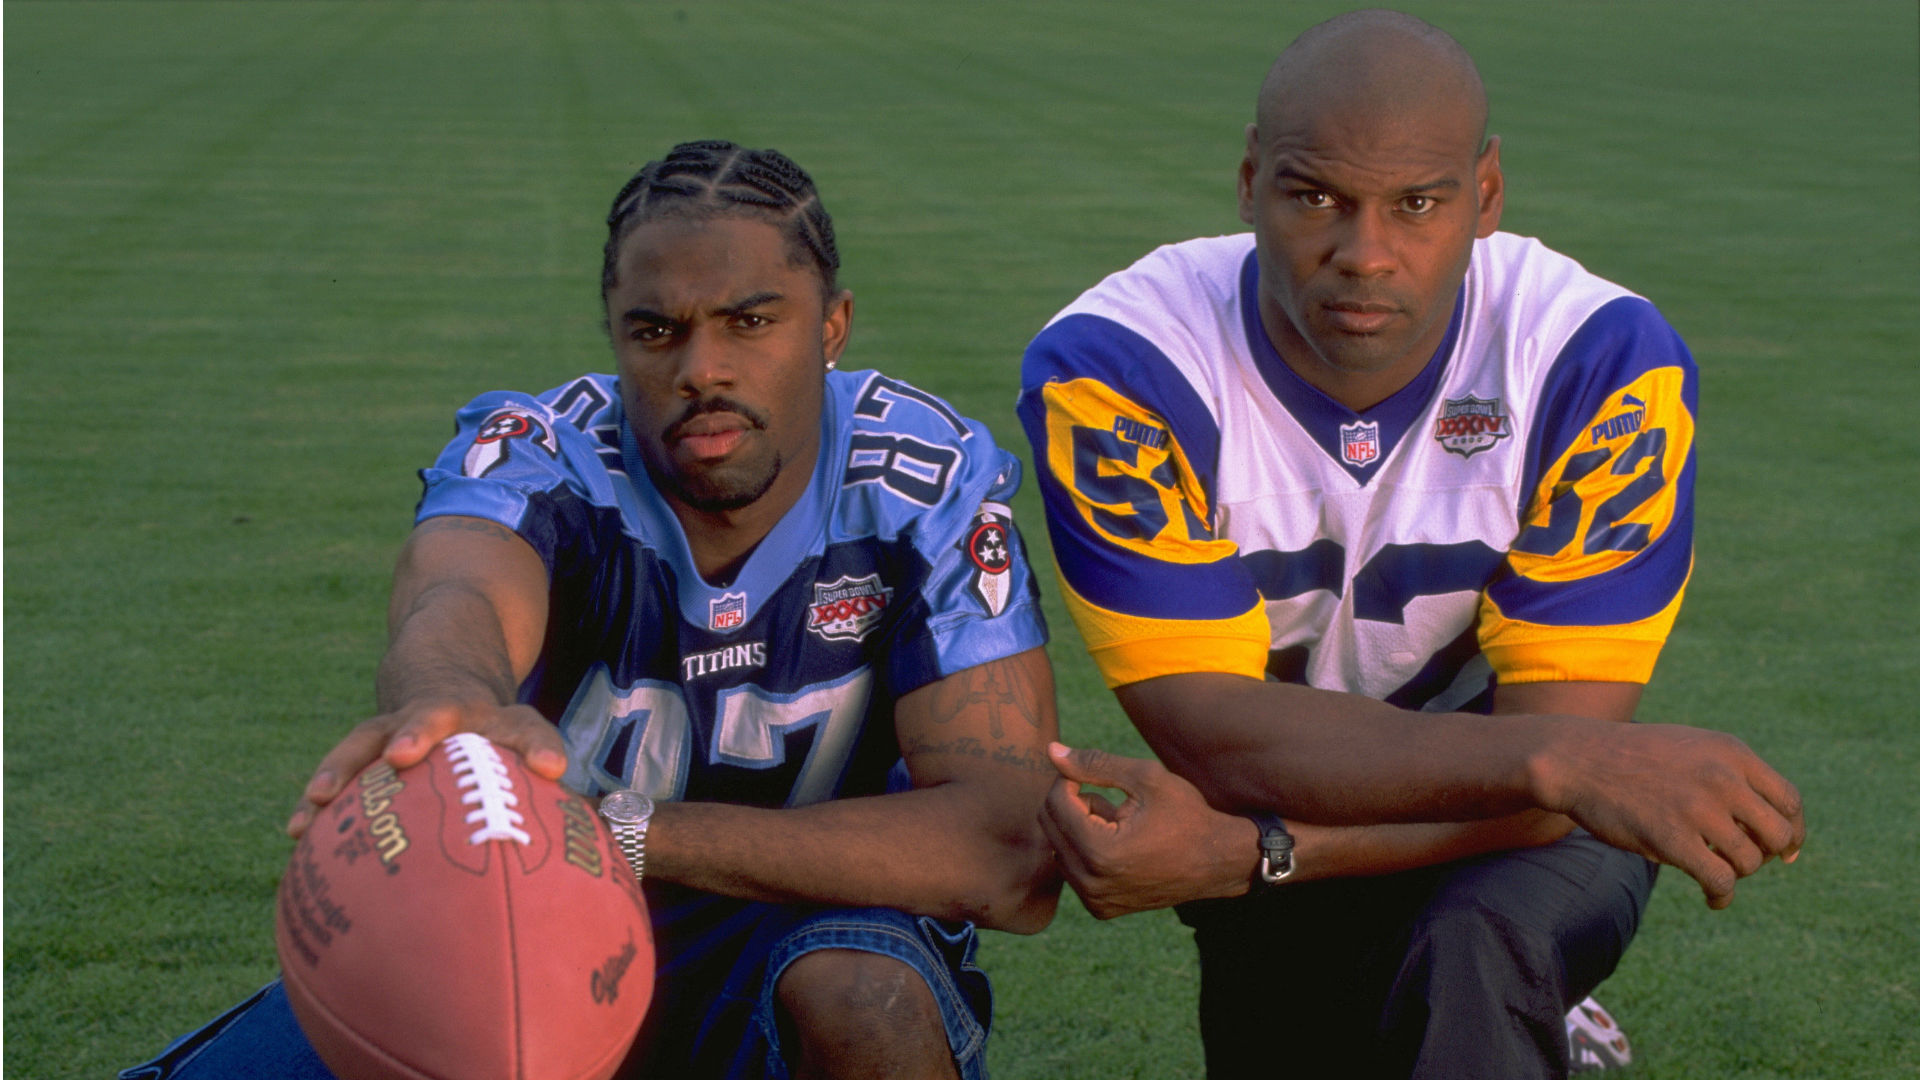 Retroceso de SN: Kevin Dyson, Mike Jones se reúnen nuevamente para discutir 'The Tackle' en el Super Bowl Titans-Rams 2